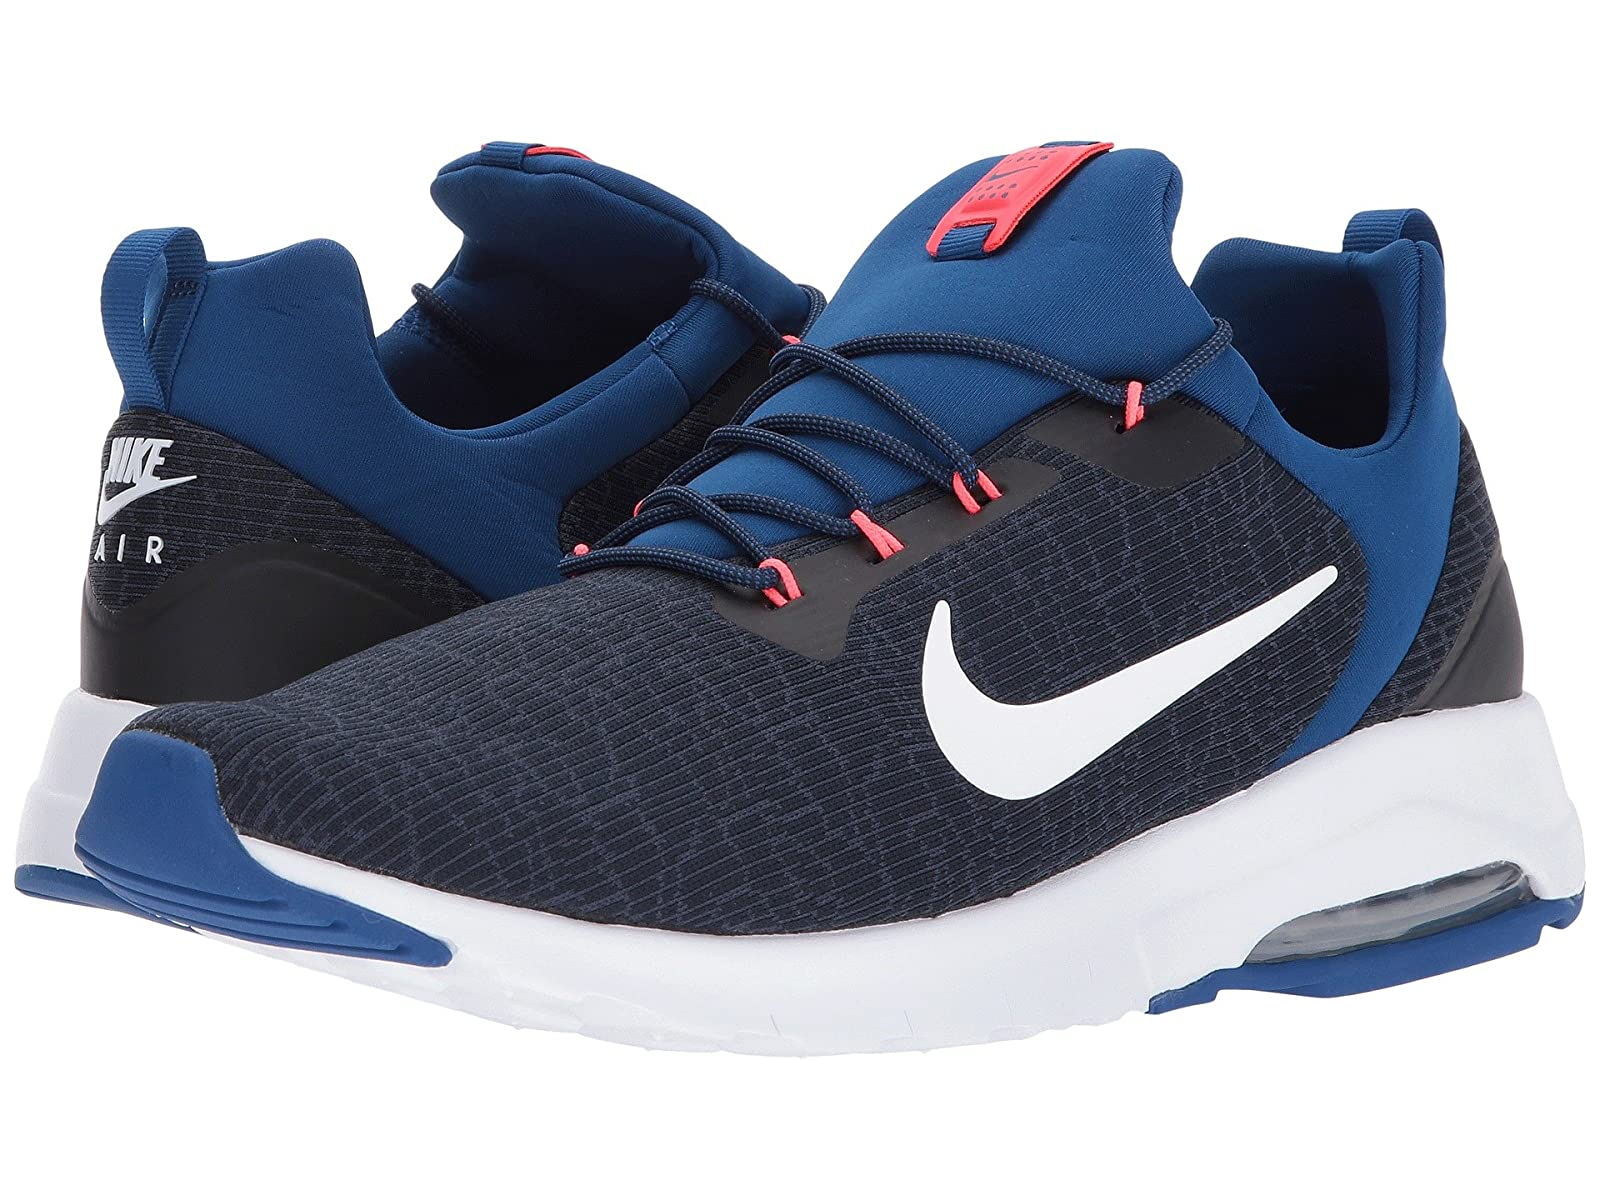 Nike Air Max Motion RacerCheap and distinctive eye-catching shoes